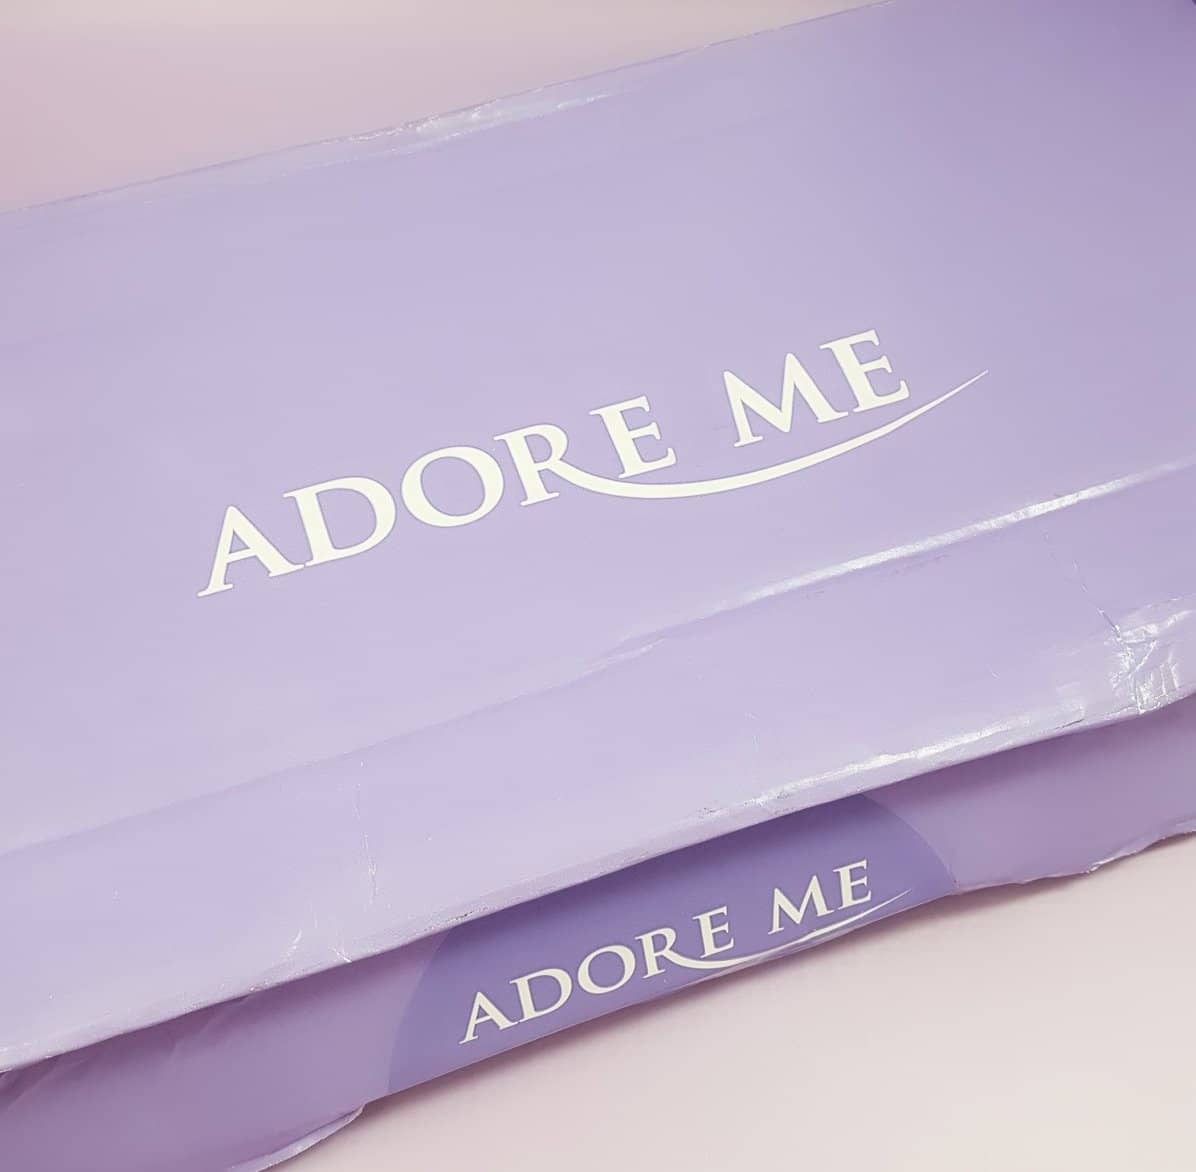 Adore Me June 2017 Subscription Box Review & Coupon